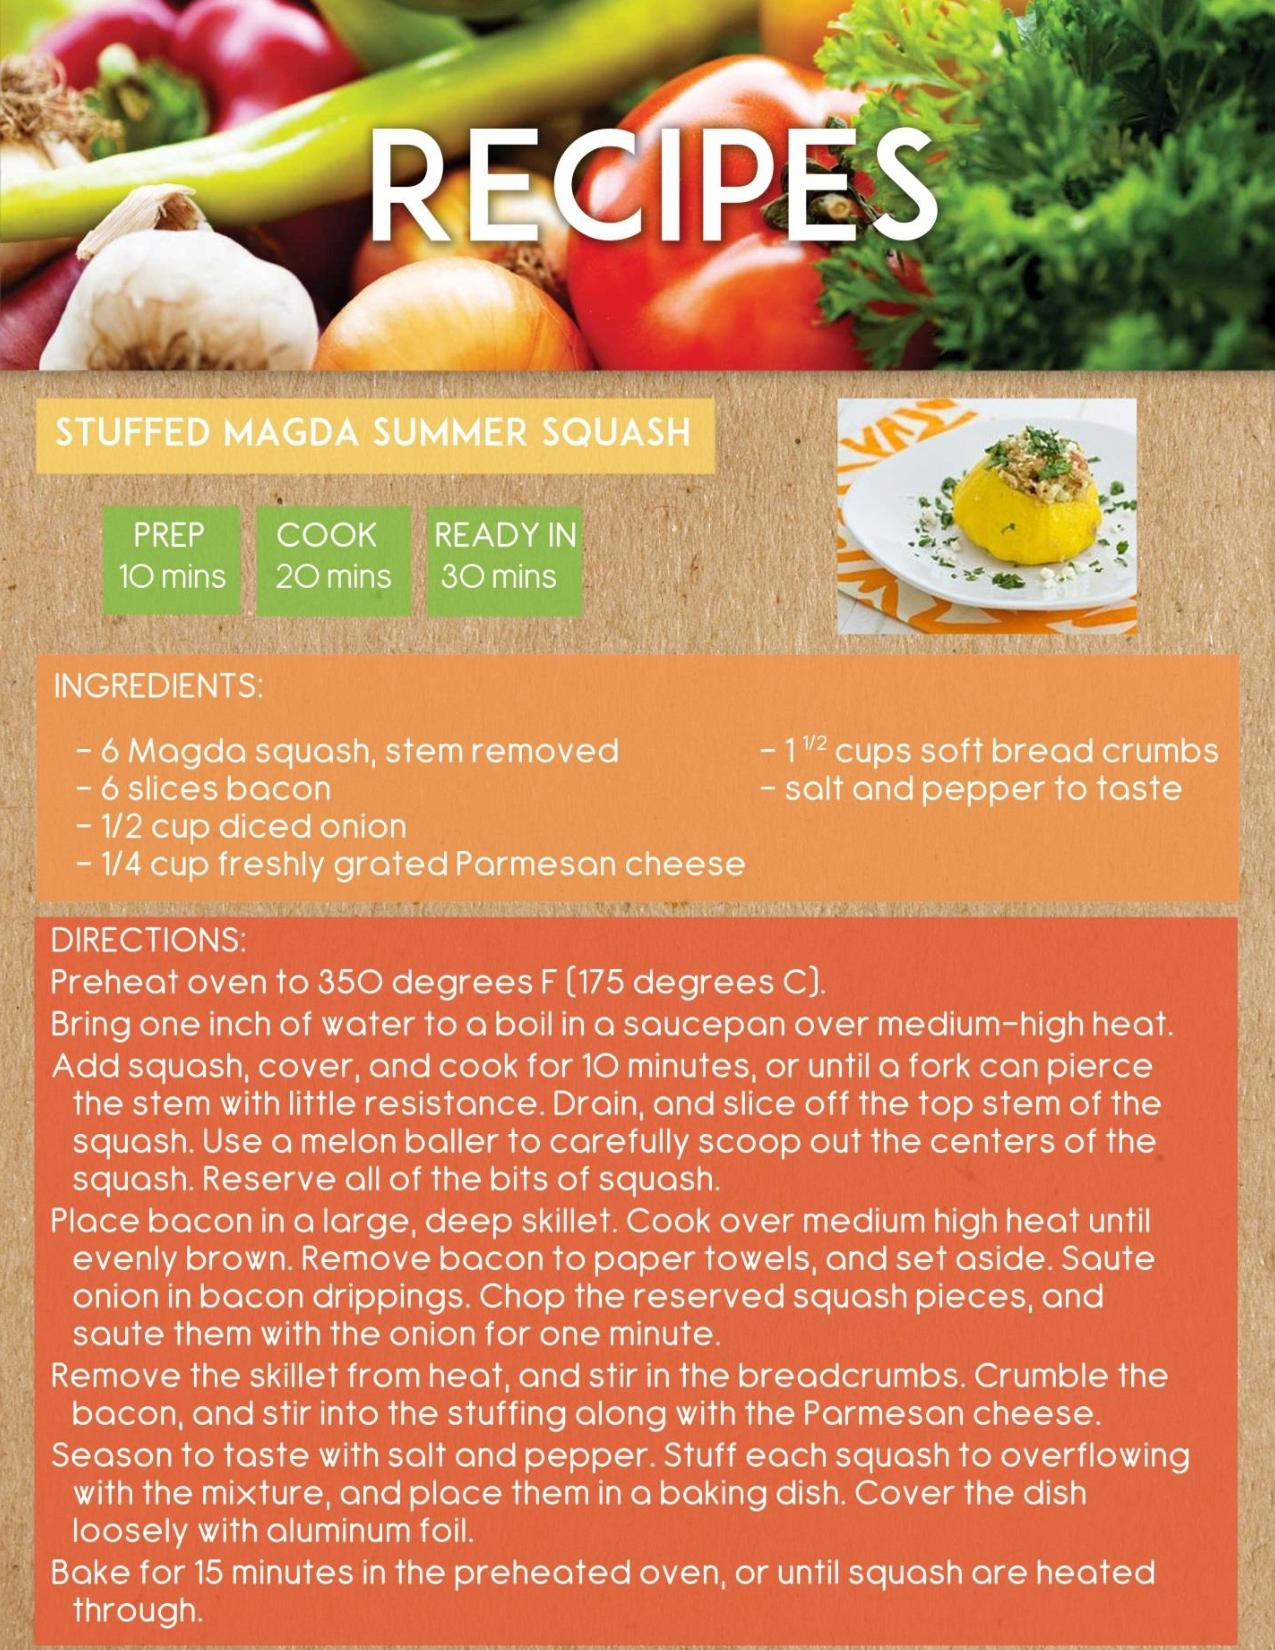 Recipes-page-001